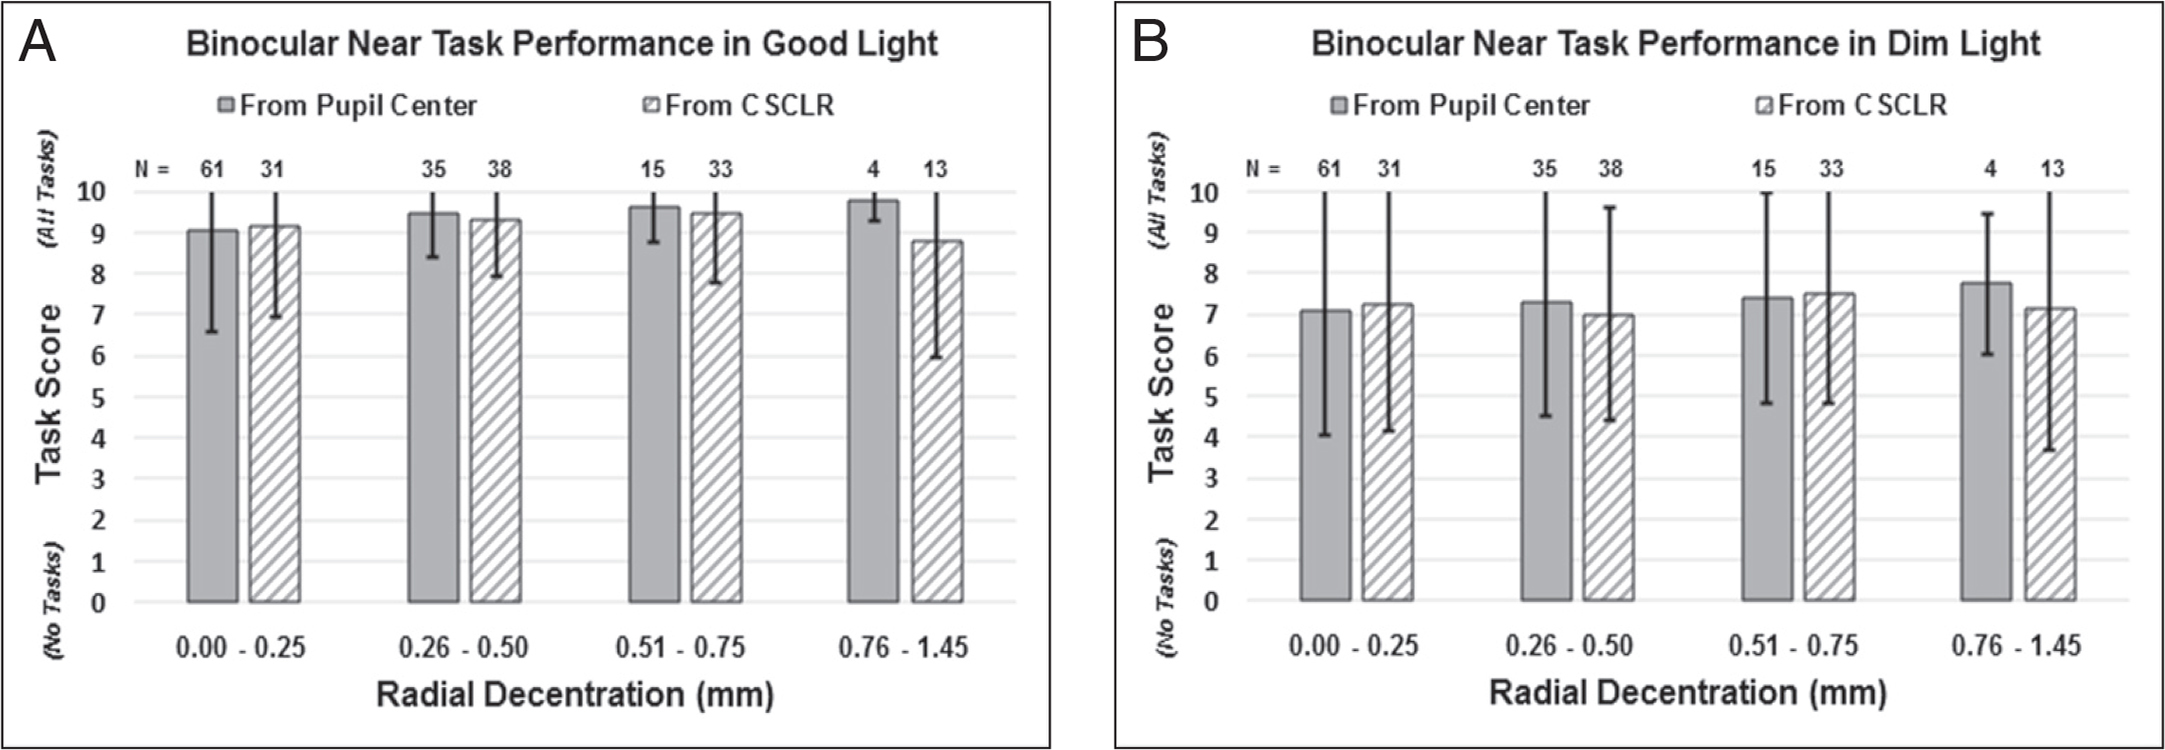 At the 3-month visit, binocular near task performance in (A) good and (B) dim light as a function of inlay decentration with respect to the pupil center and coaxially sighted corneal light reflex (CSCLR). Error bars represent one standard deviation.